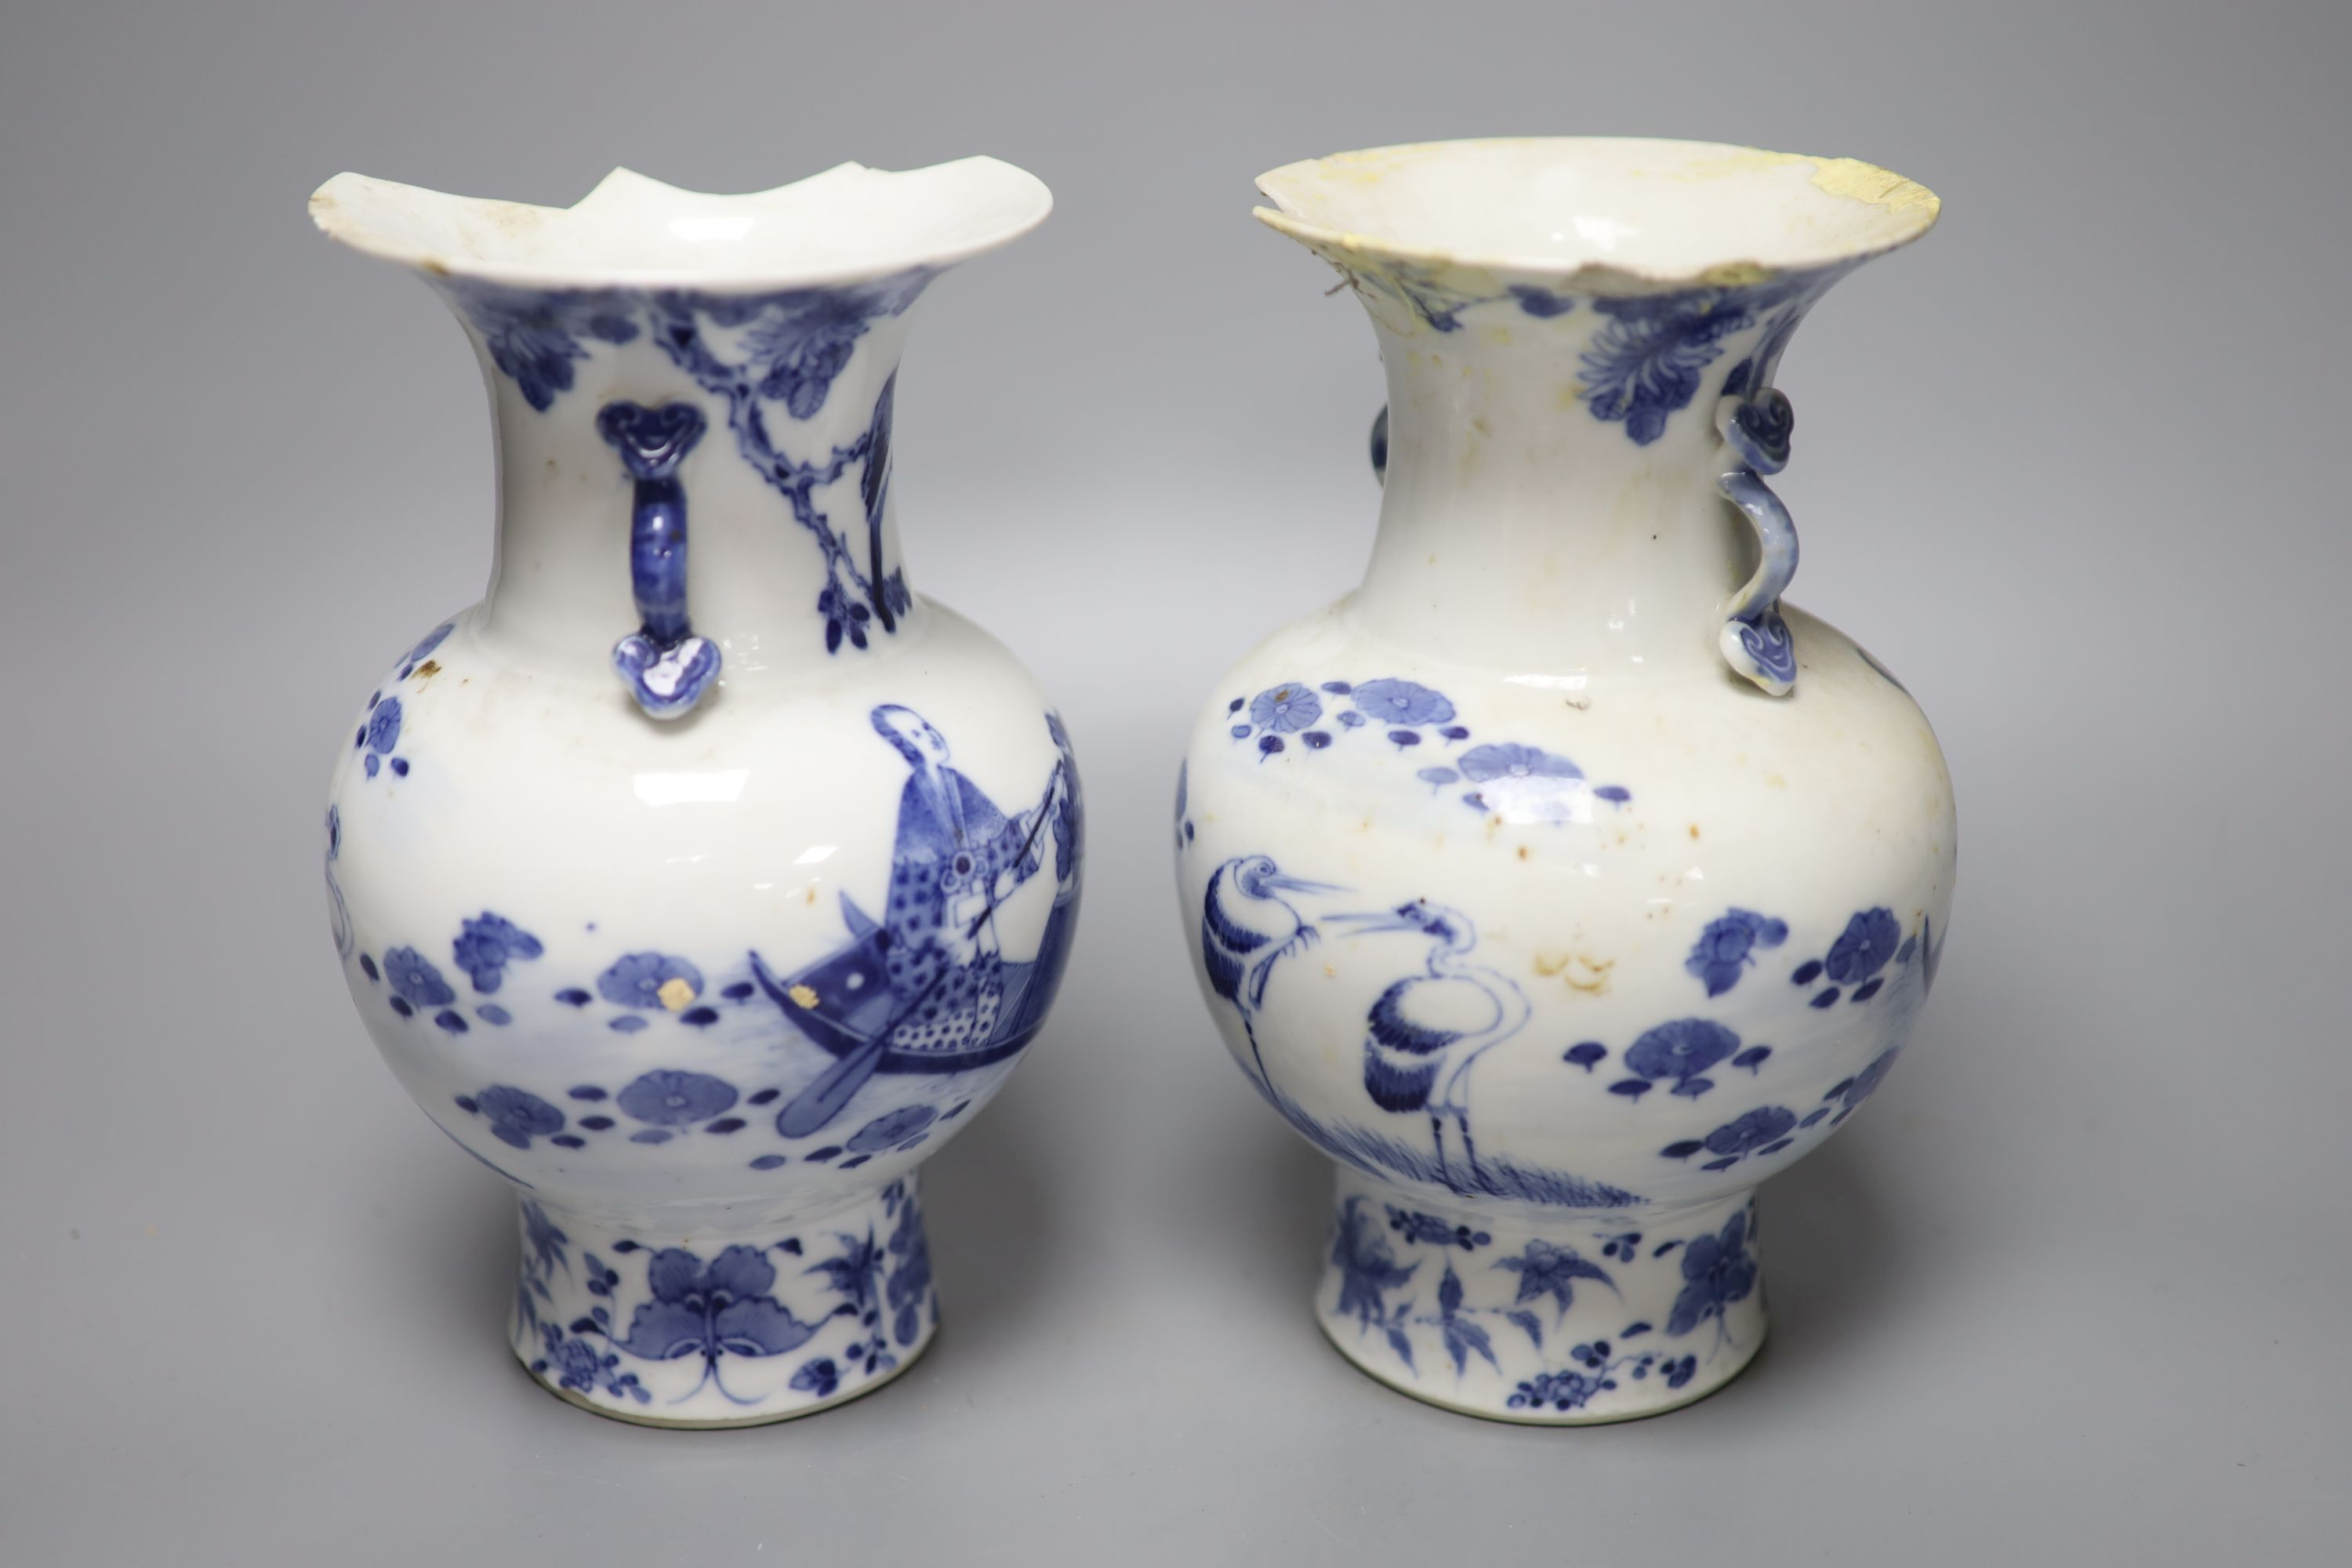 A pair of 19th century Chinese blue and white vases (a.f.), 23cm high - Image 4 of 6